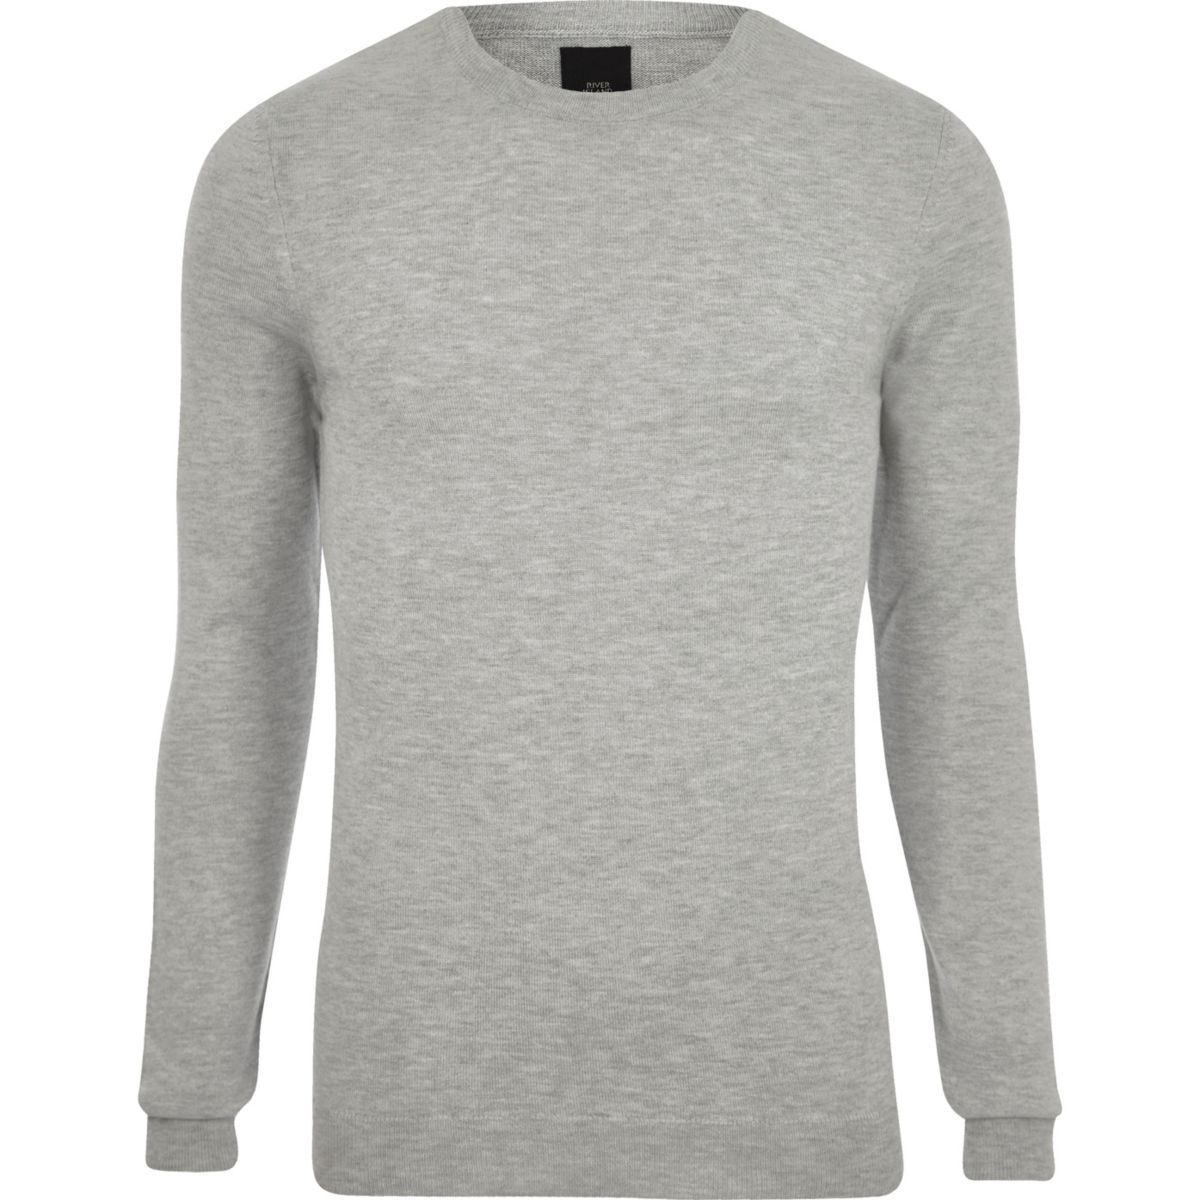 Grey marl muscle fit crew neck jumper